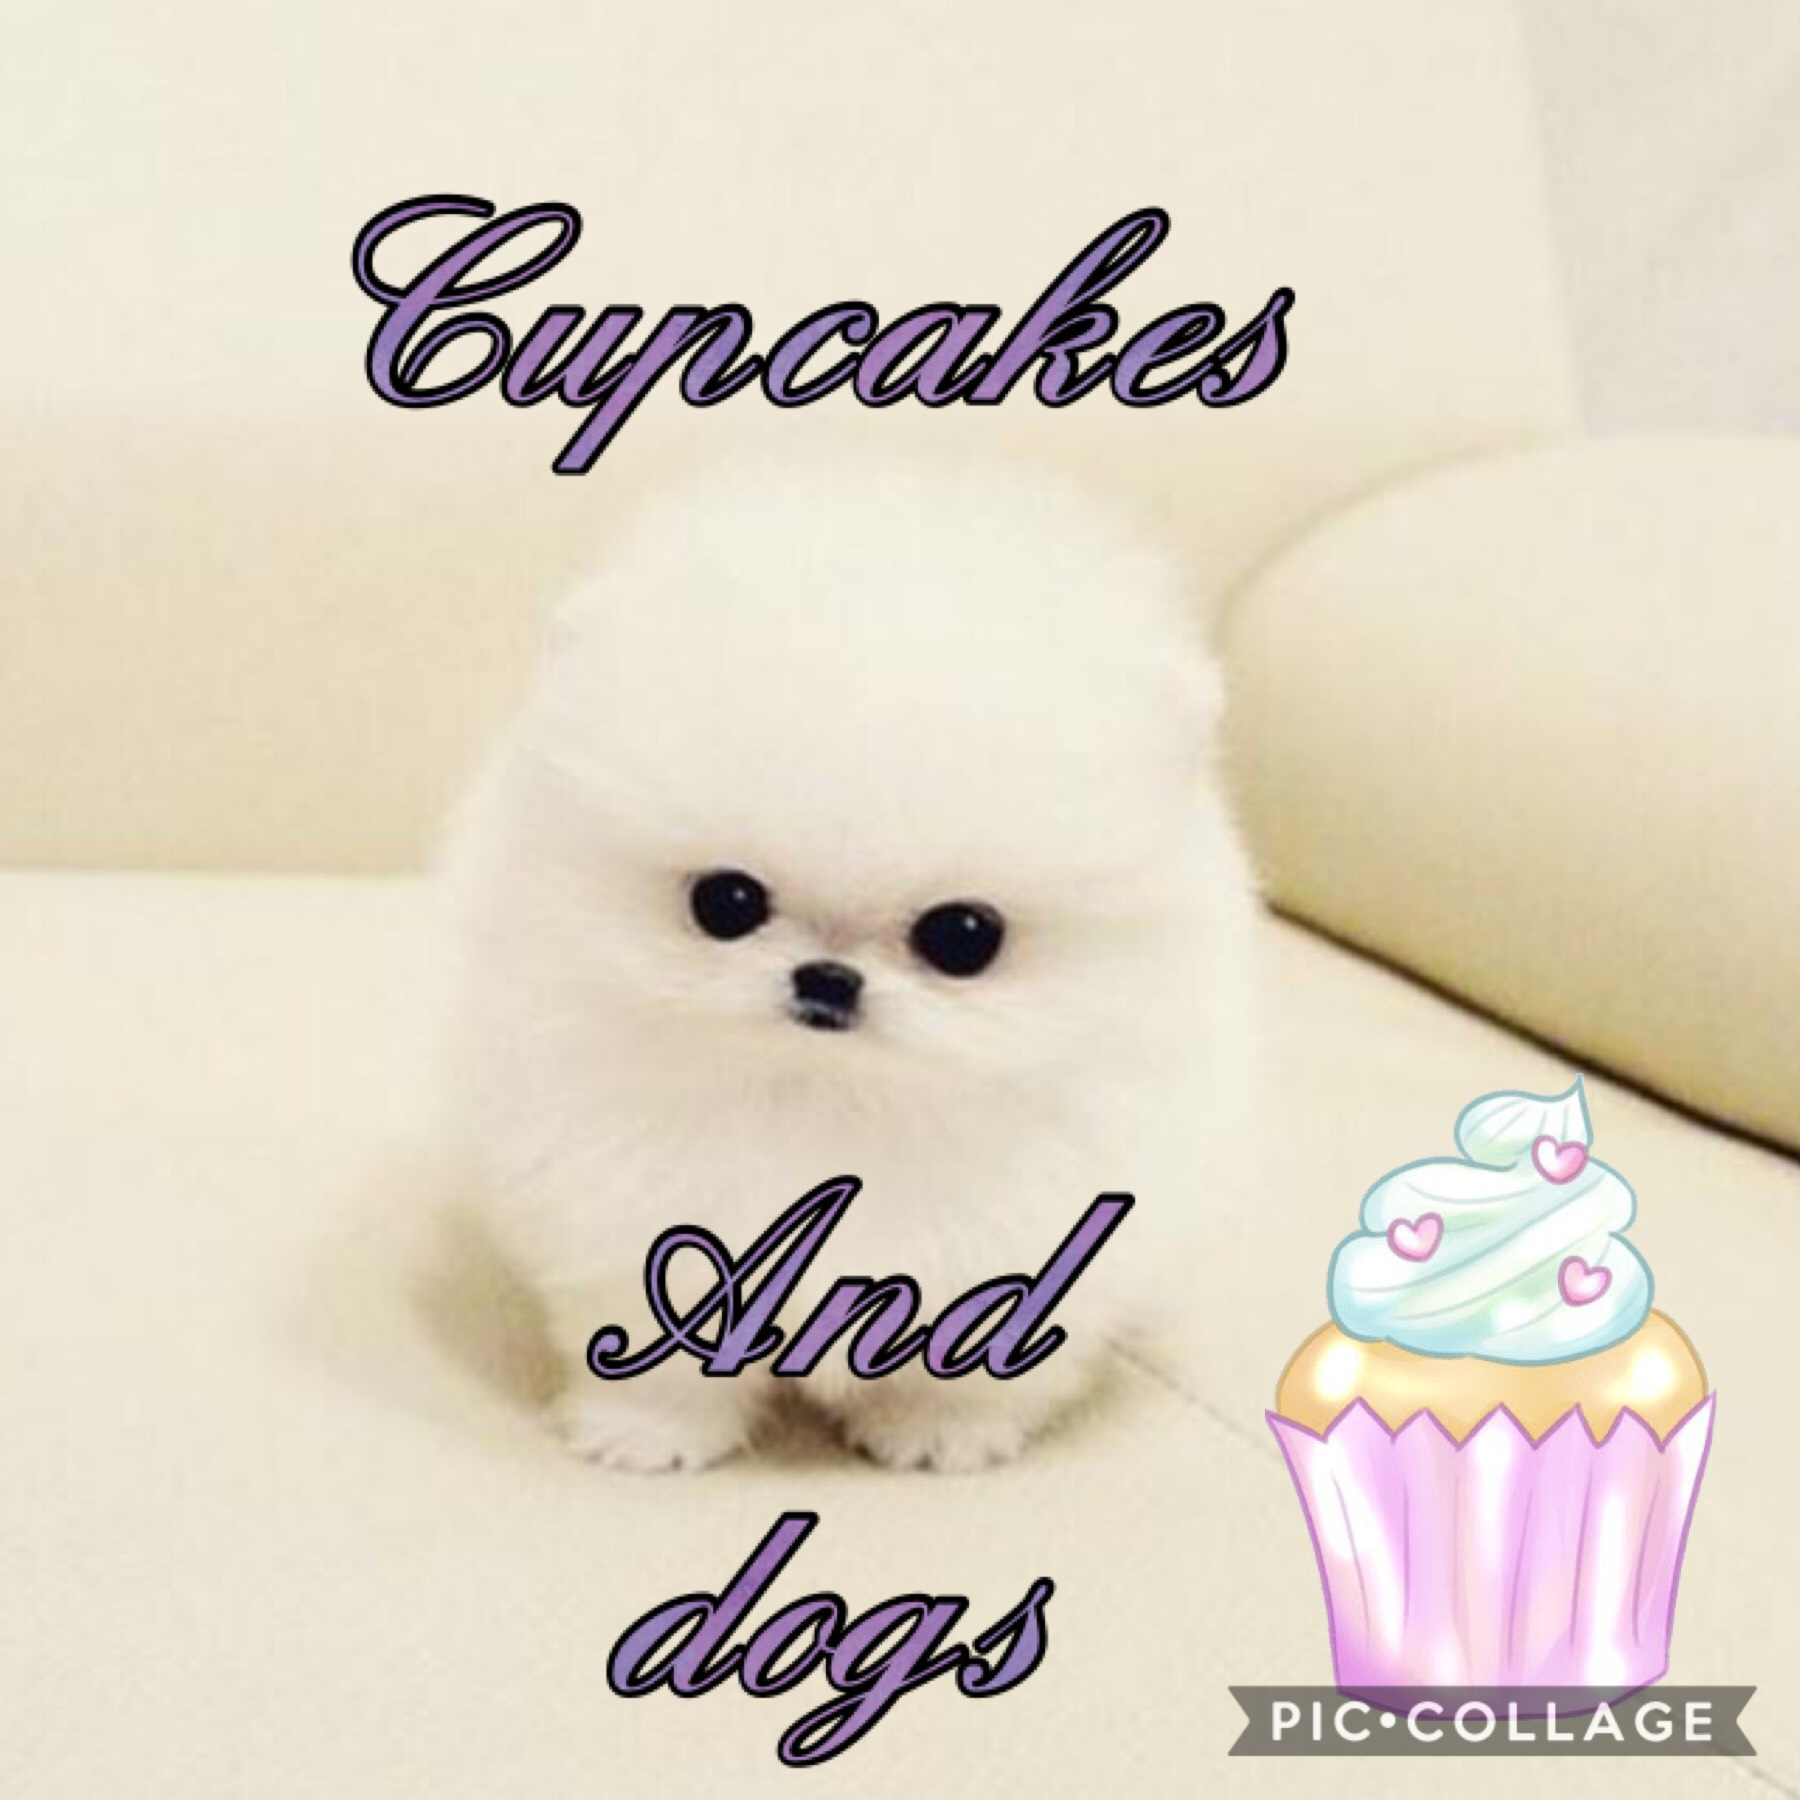 I love cupcakes and dogs